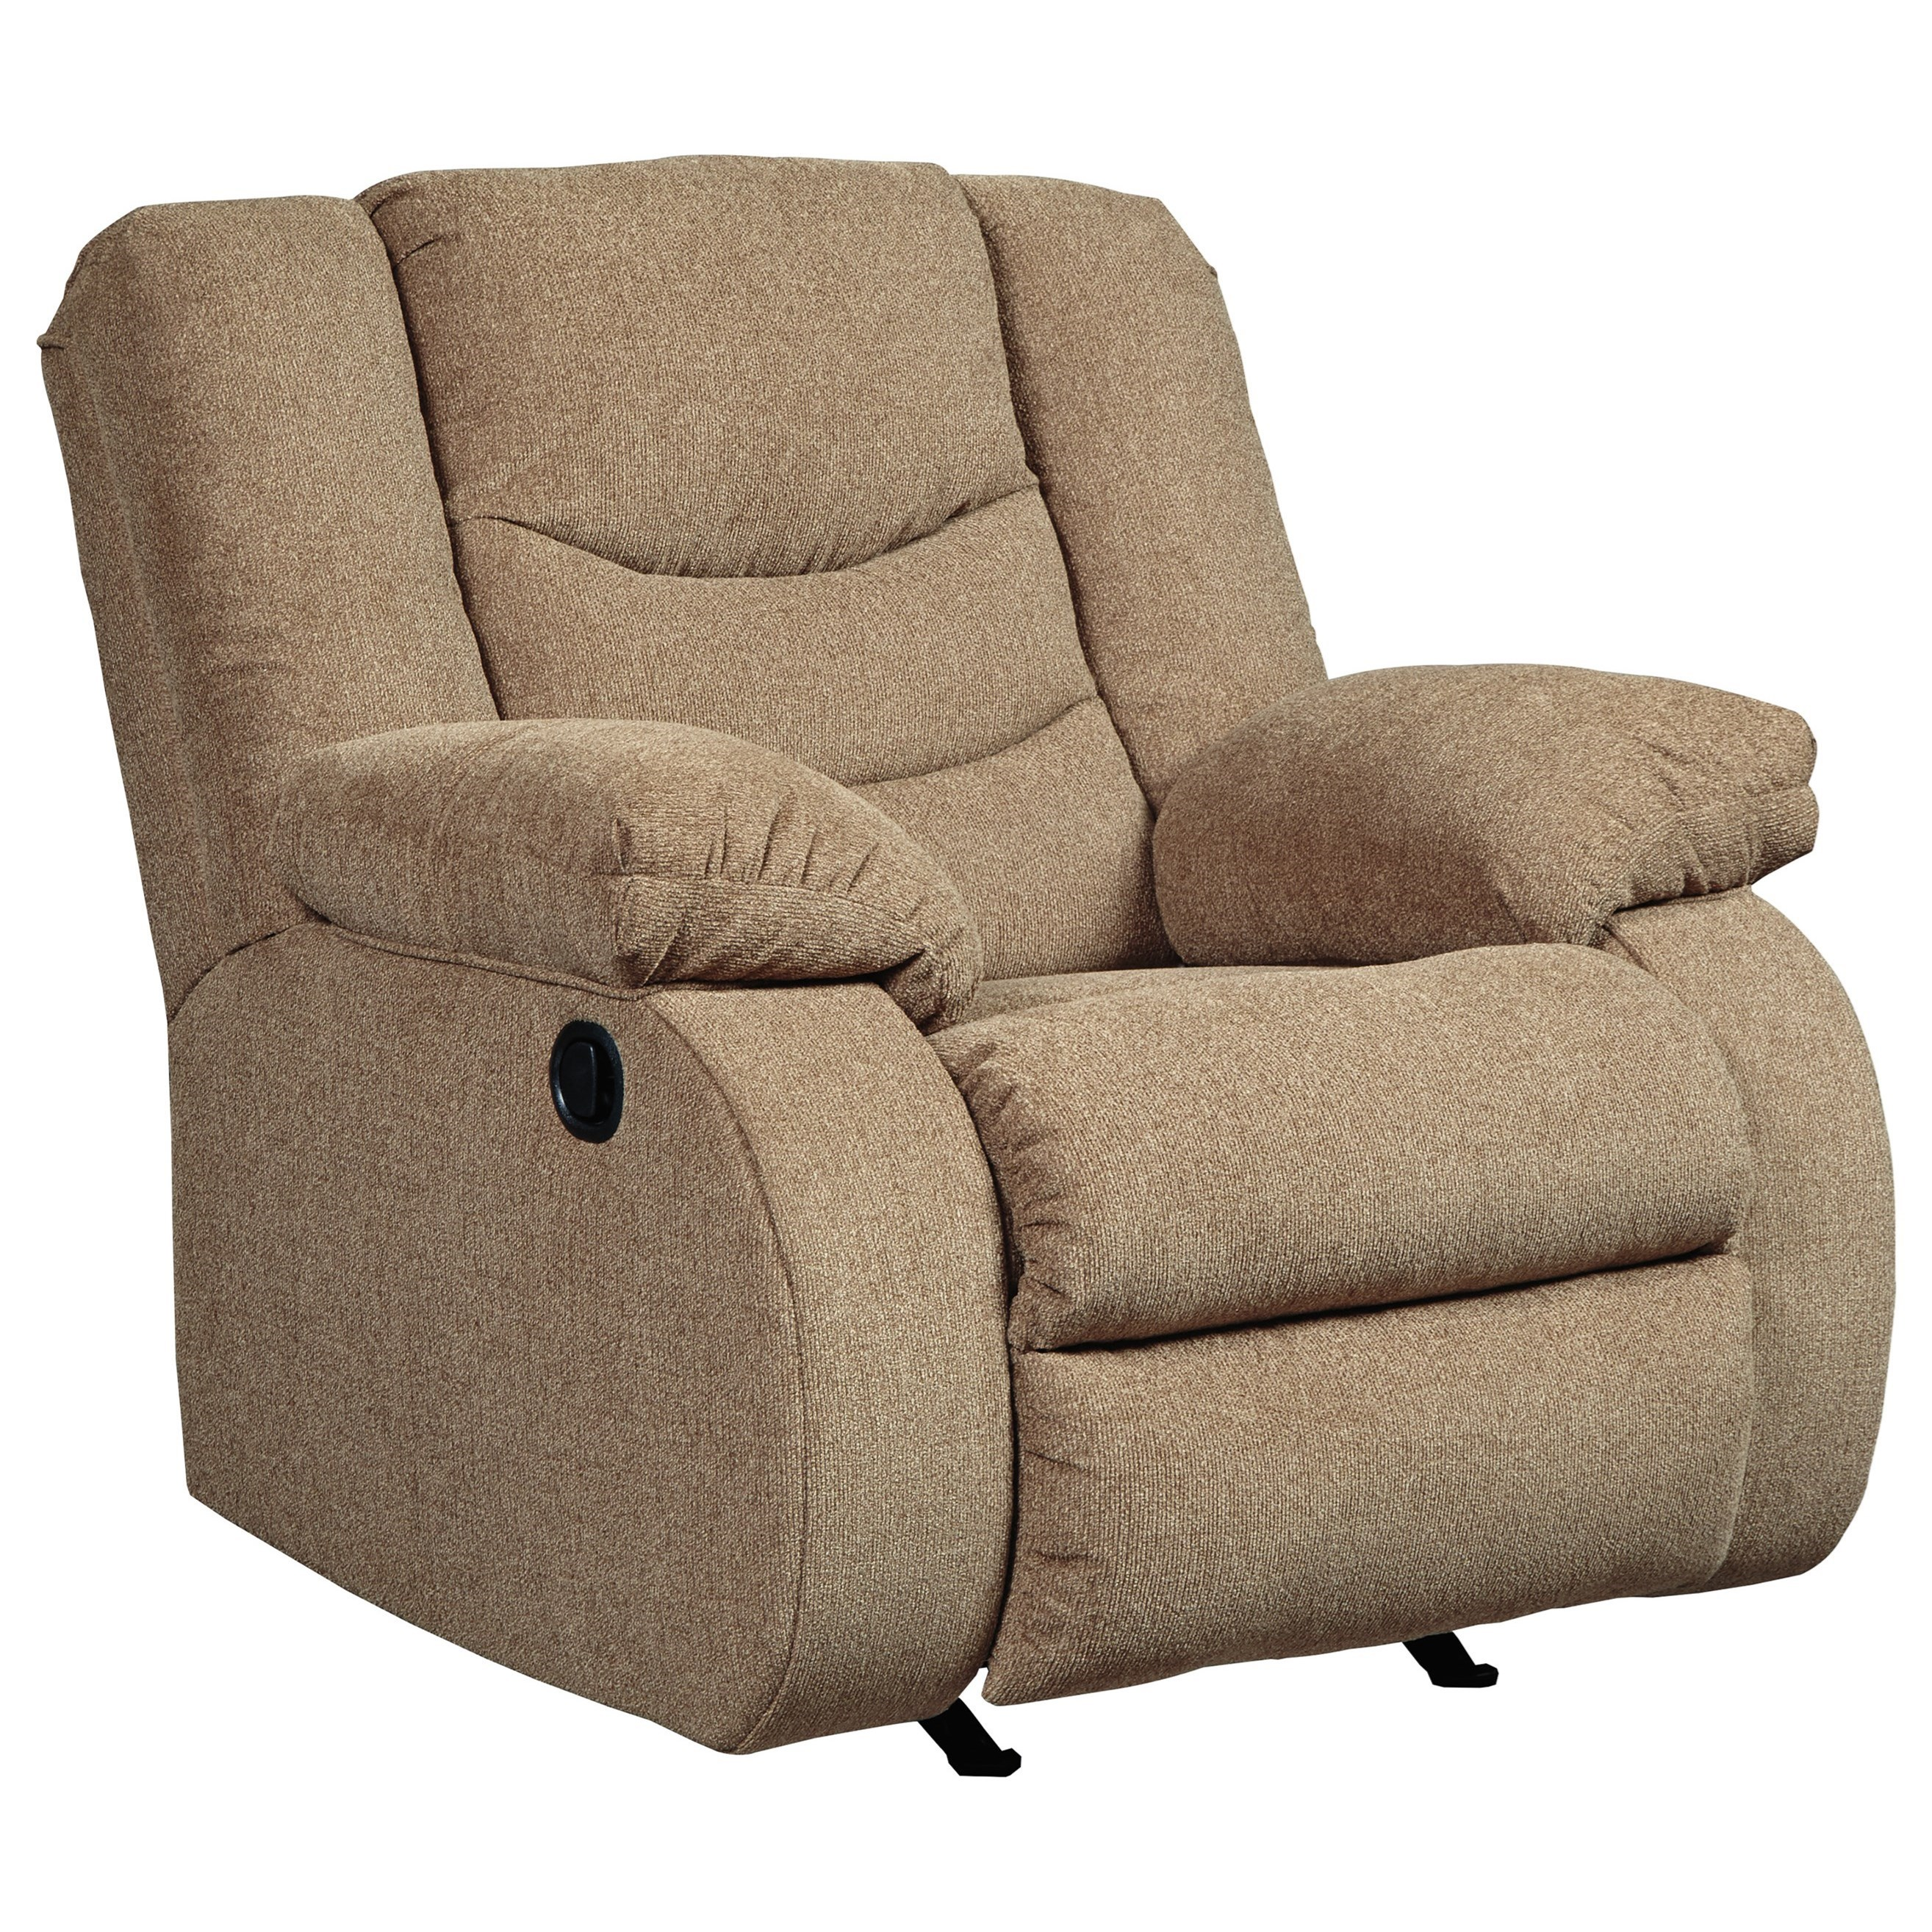 Tulen Rocker Recliner by Signature Design by Ashley at Sparks HomeStore